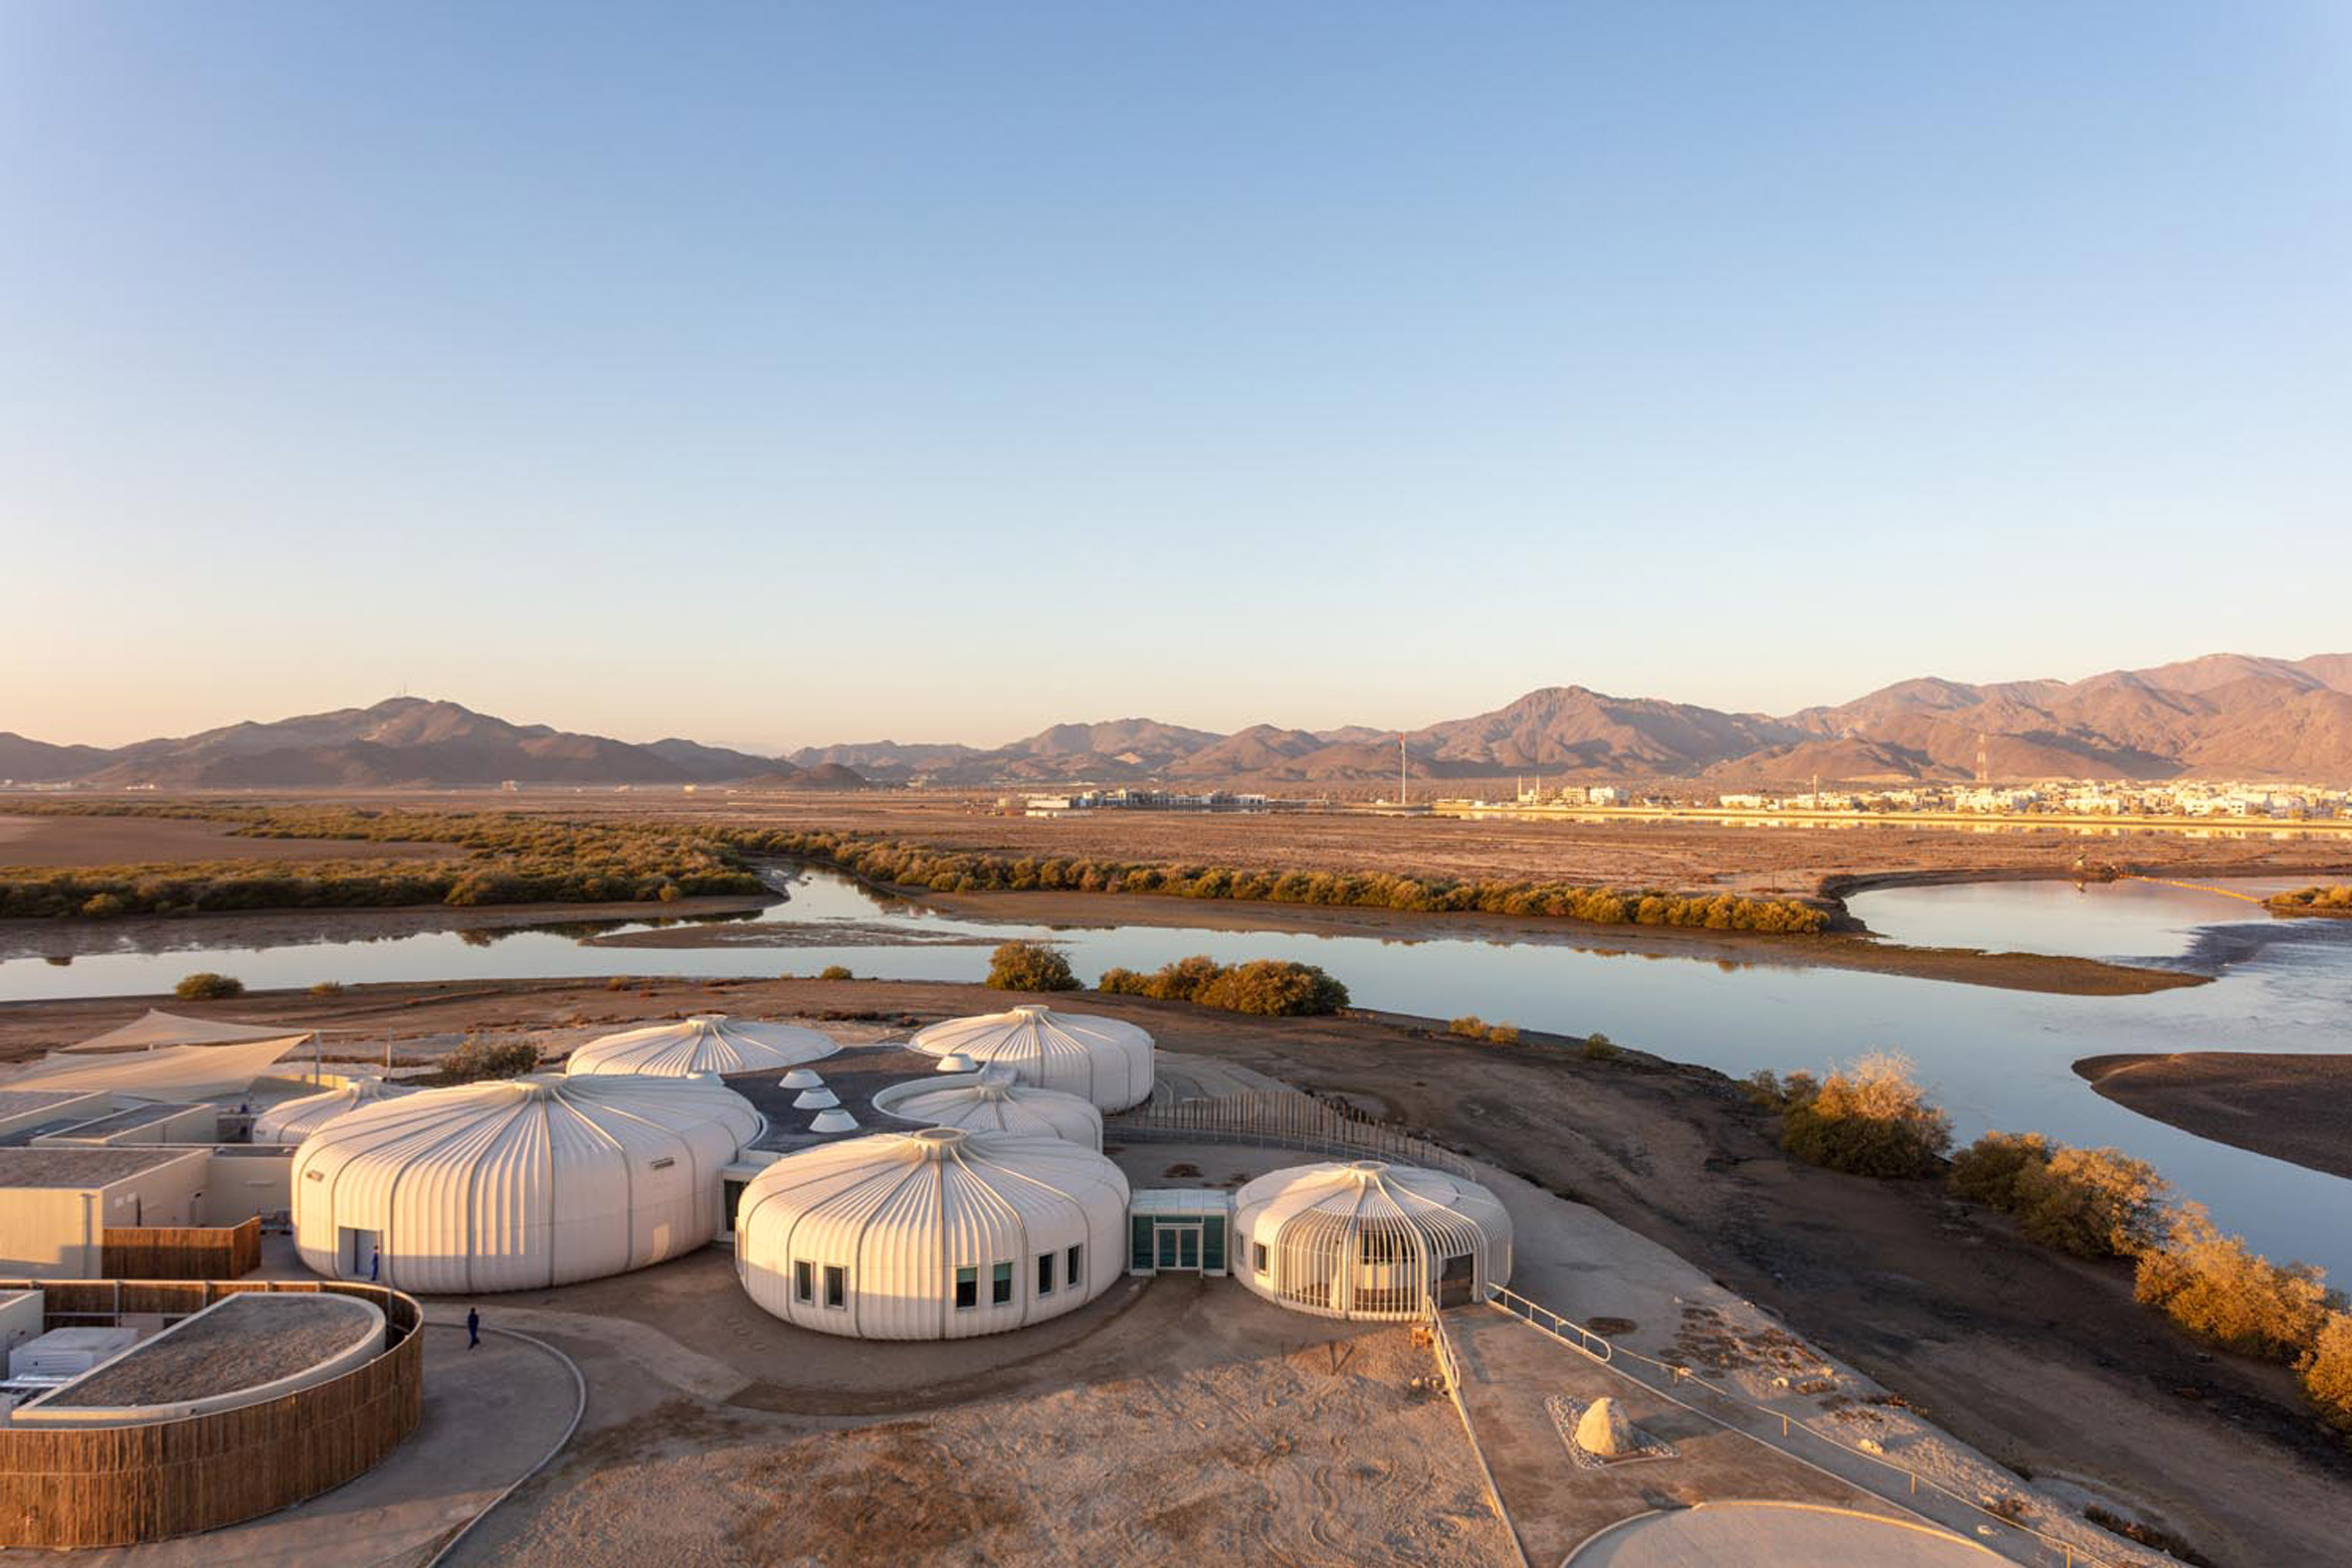 Khor Kalba Turtle Wildlife Sanctuary